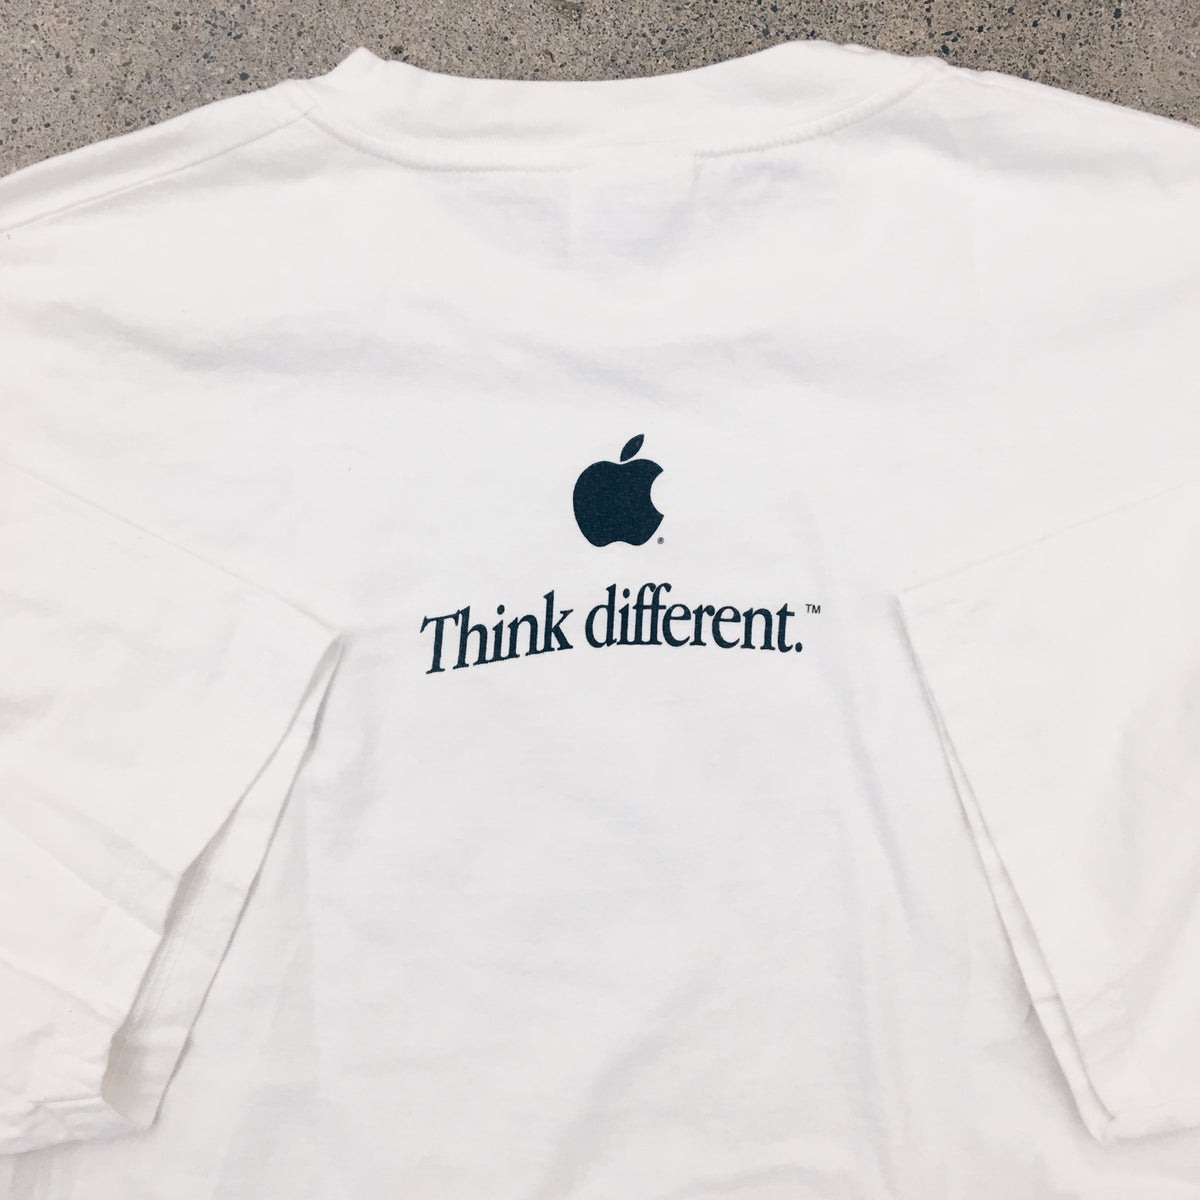 Image of Original 1998 Apple G3 Tee.